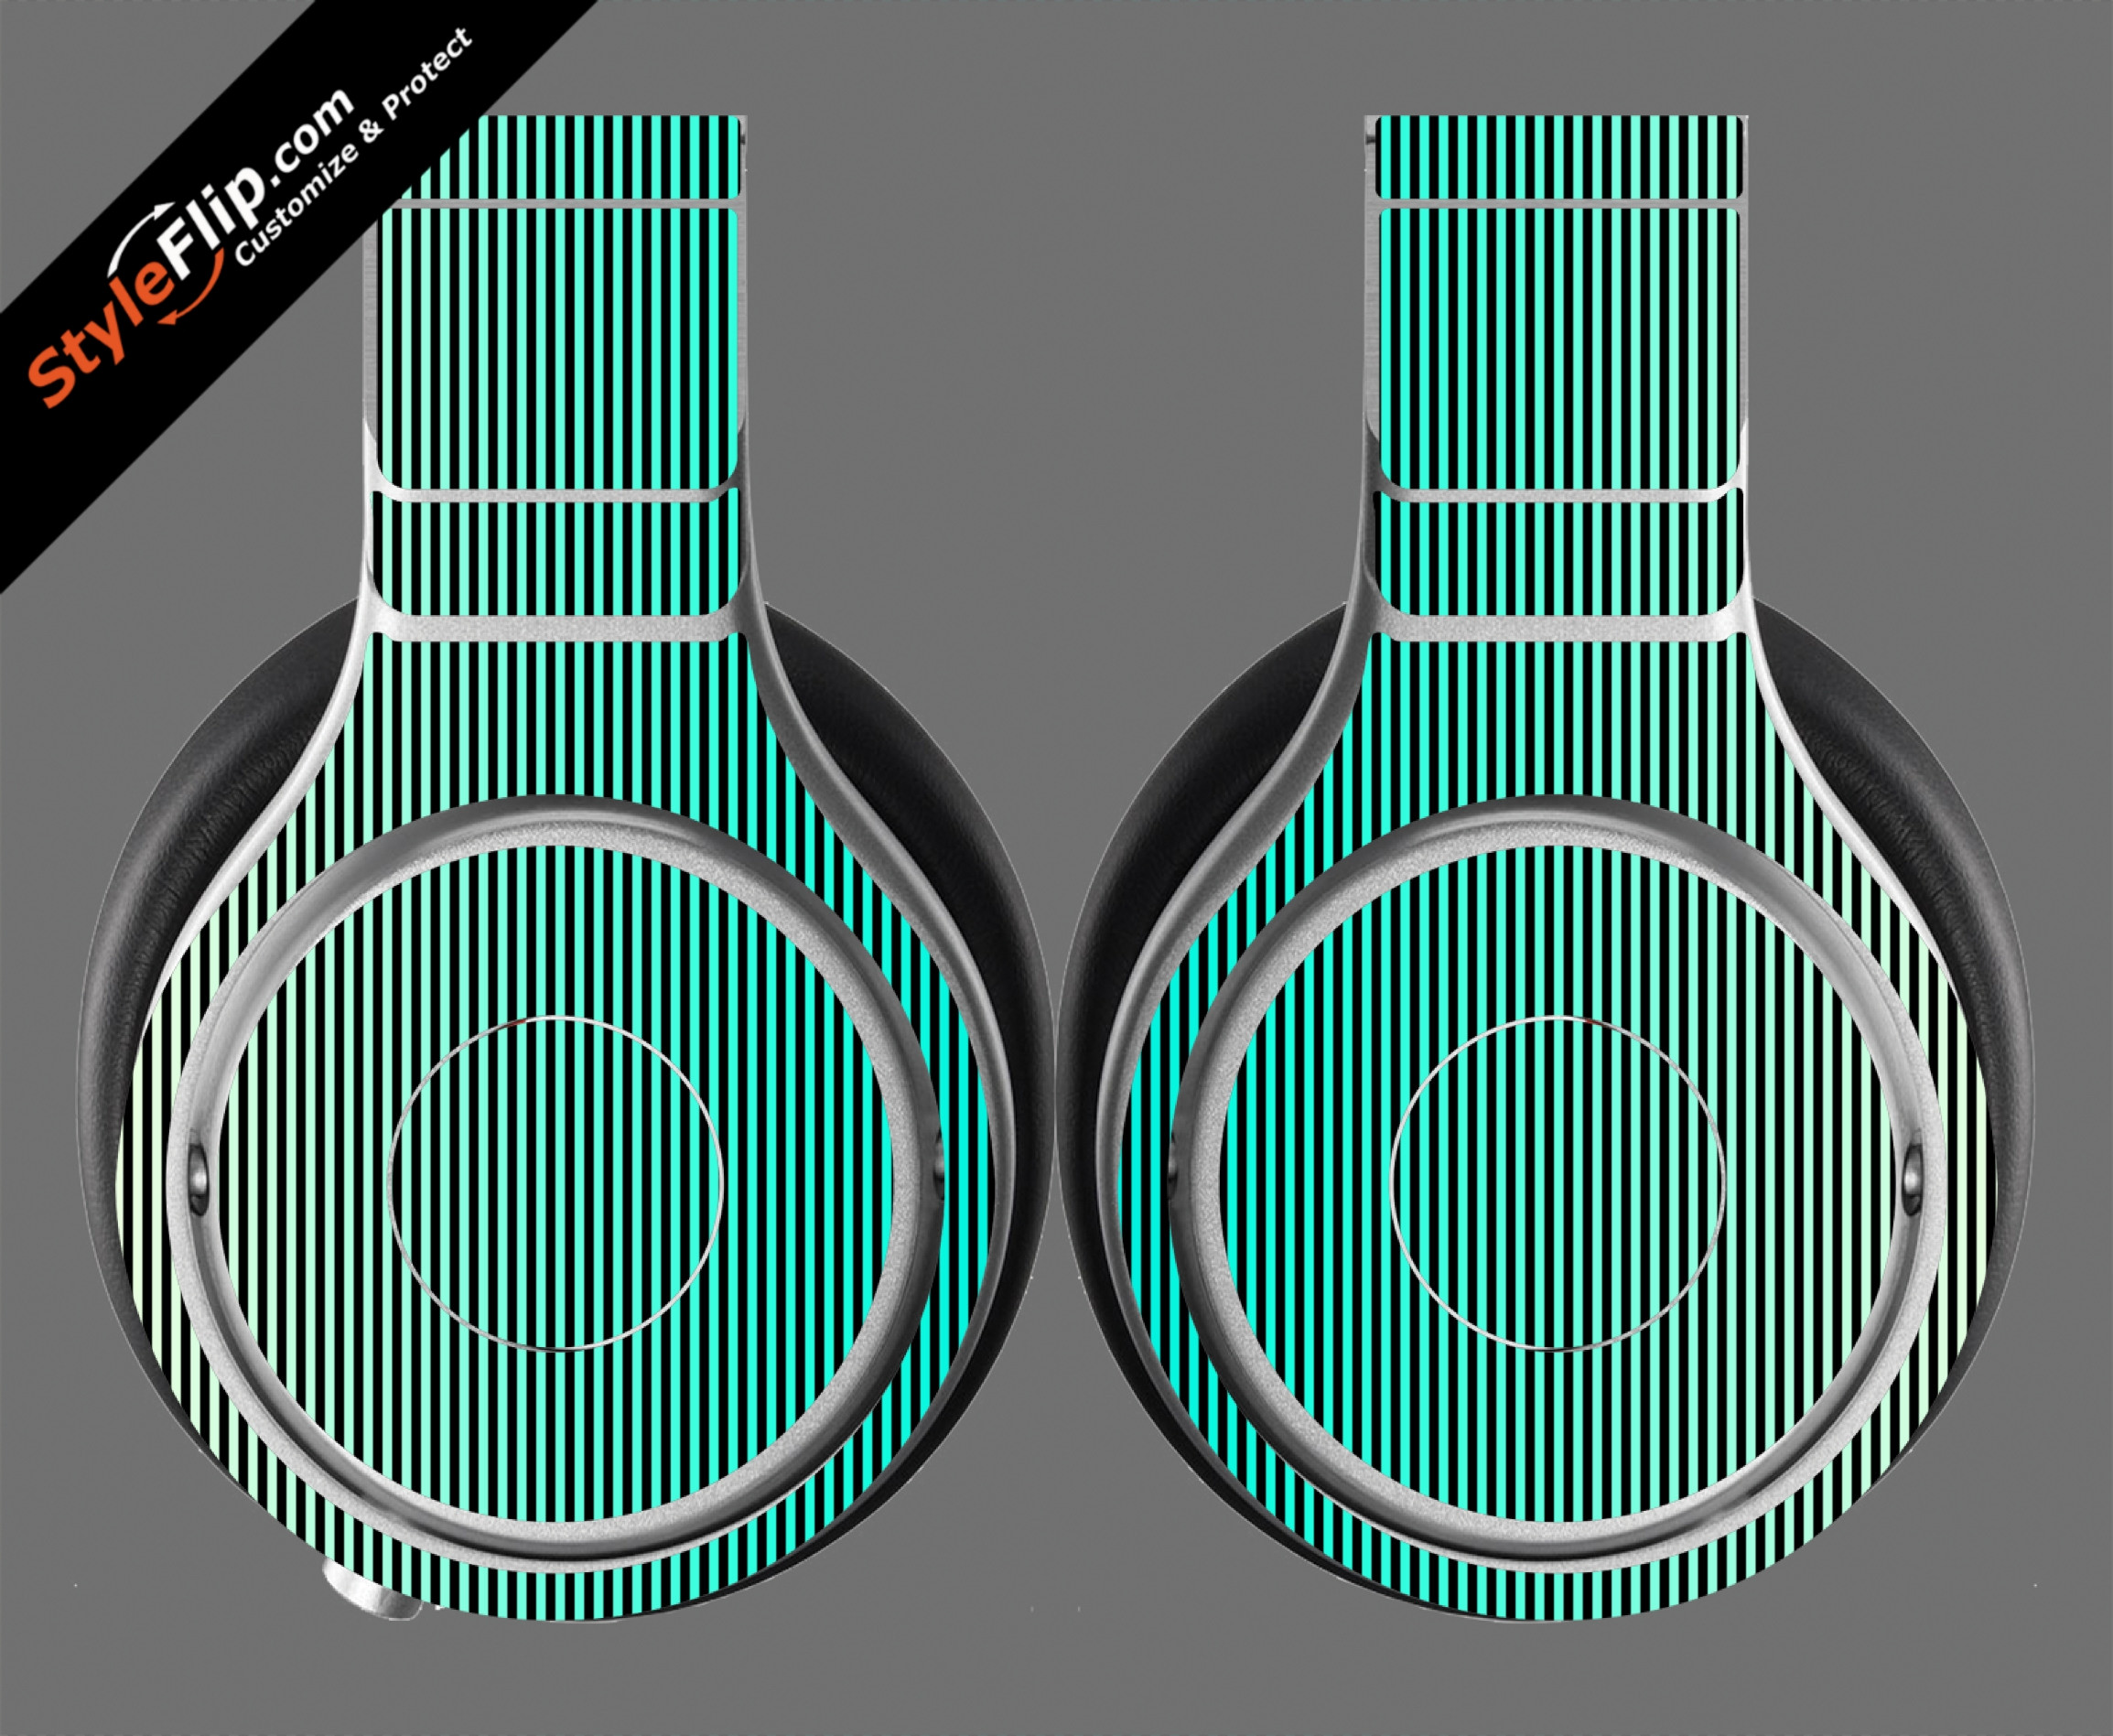 Teal Stripes Beats By Dr. Dre Beats Pro Model